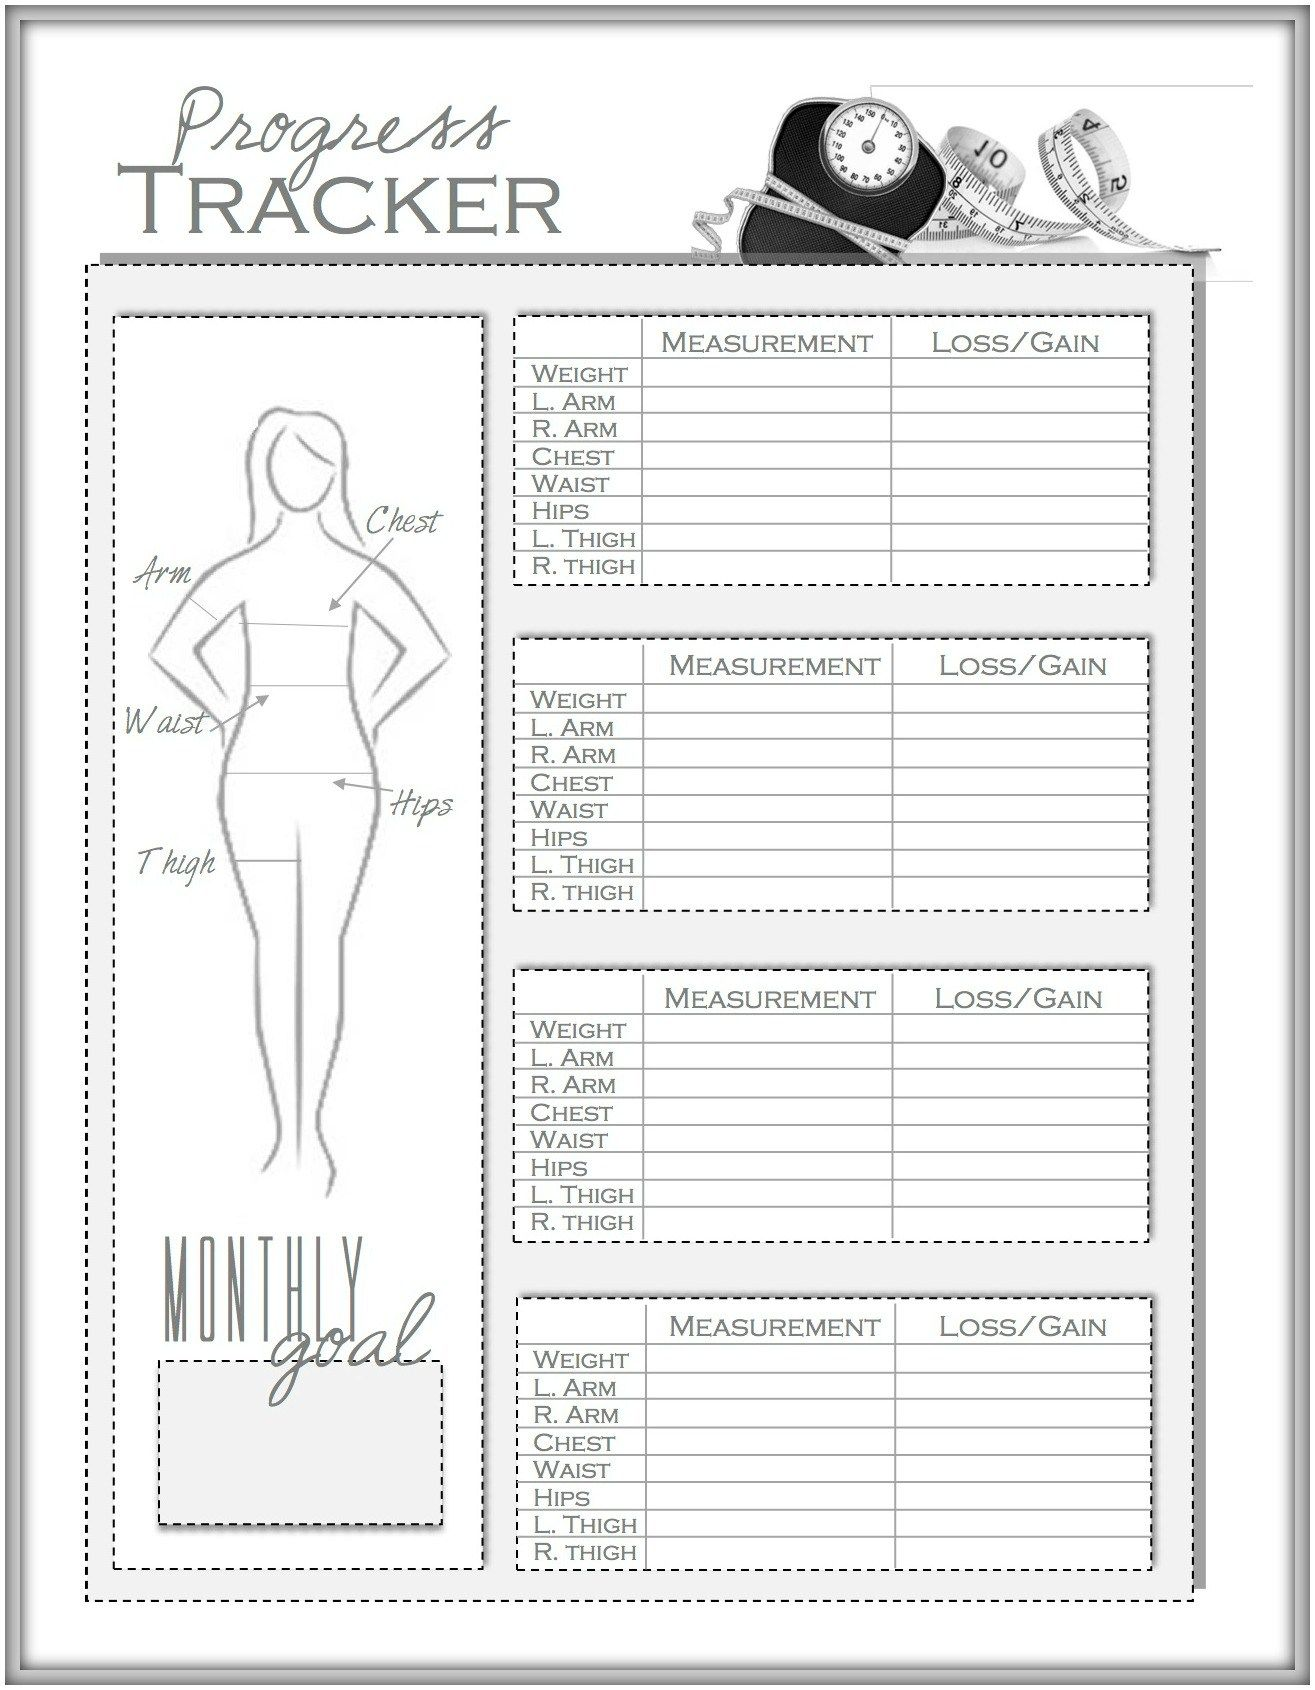 Weight Loss And Measurement Progress Tracker Planners Pinterest